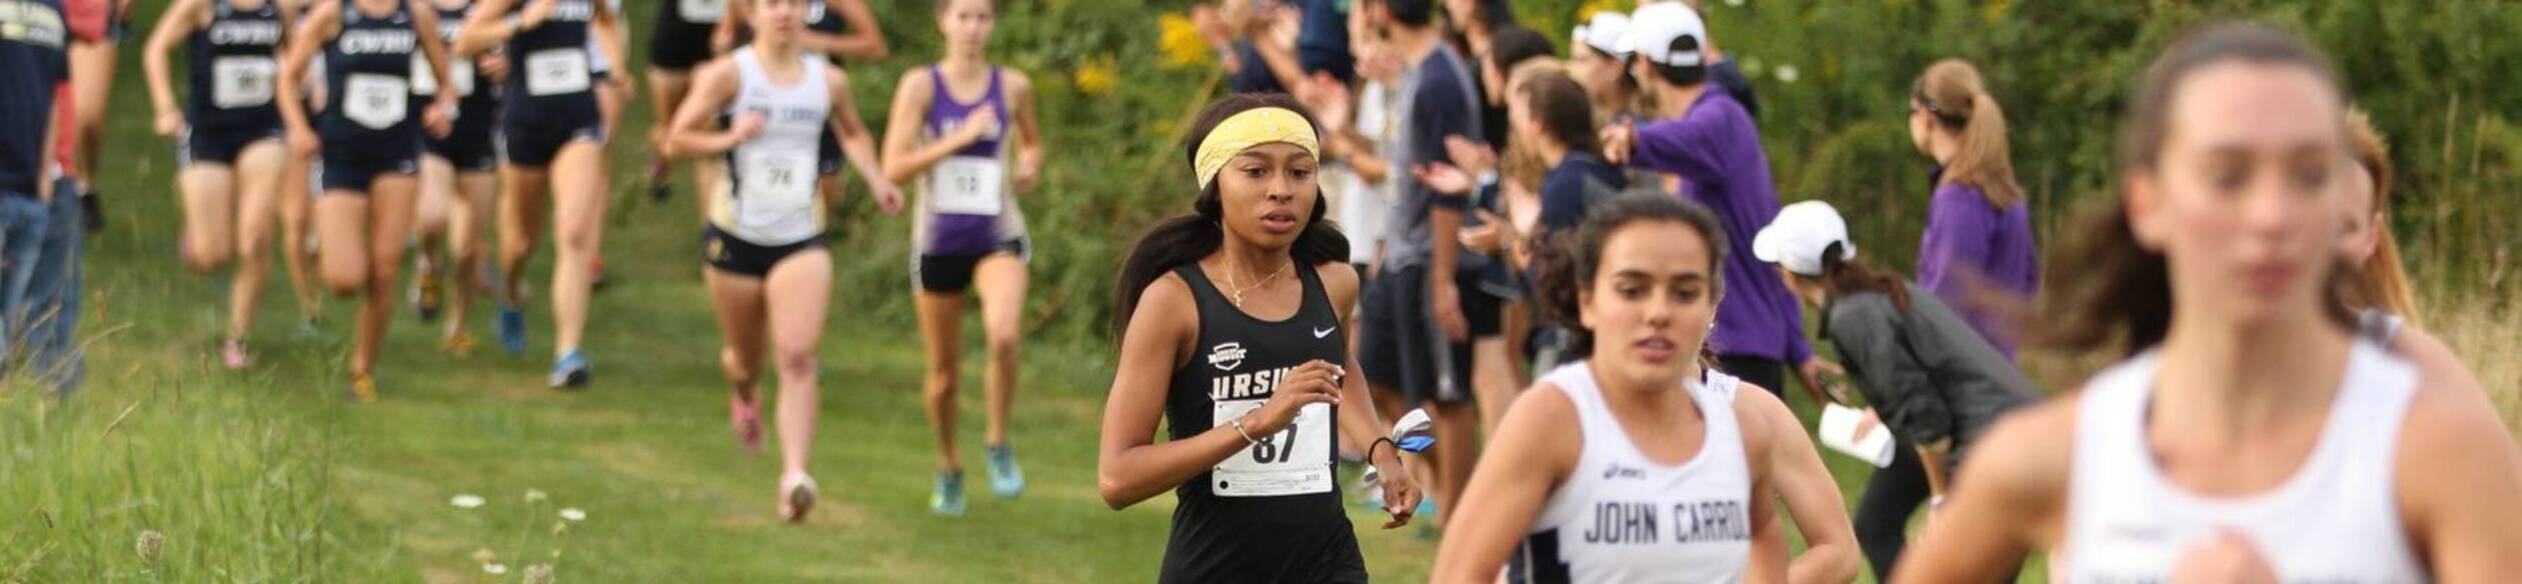 Ursuline college cross country runner